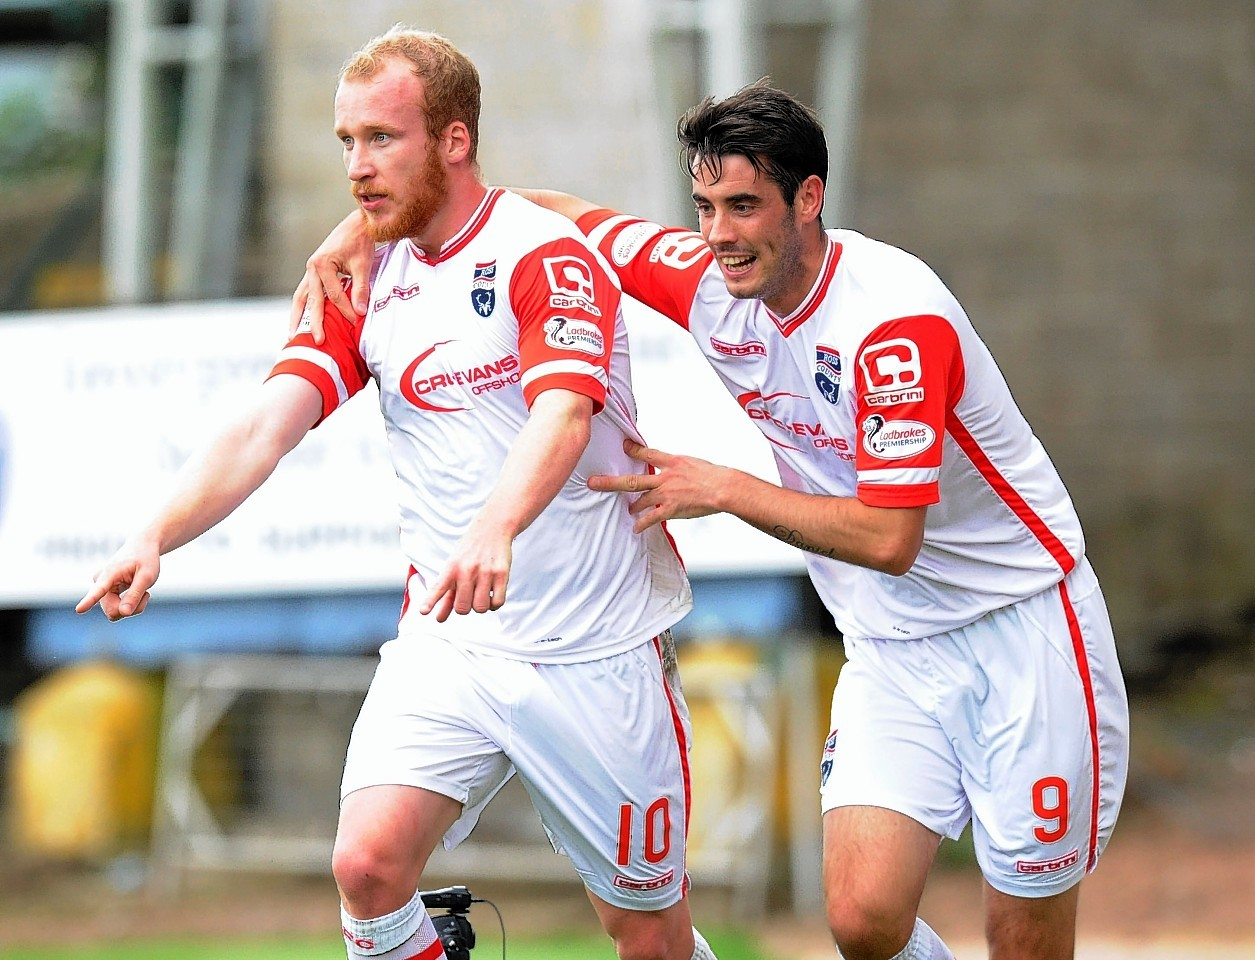 Ross County forwards Liam Boyce and Brian Graham have been in impressive form